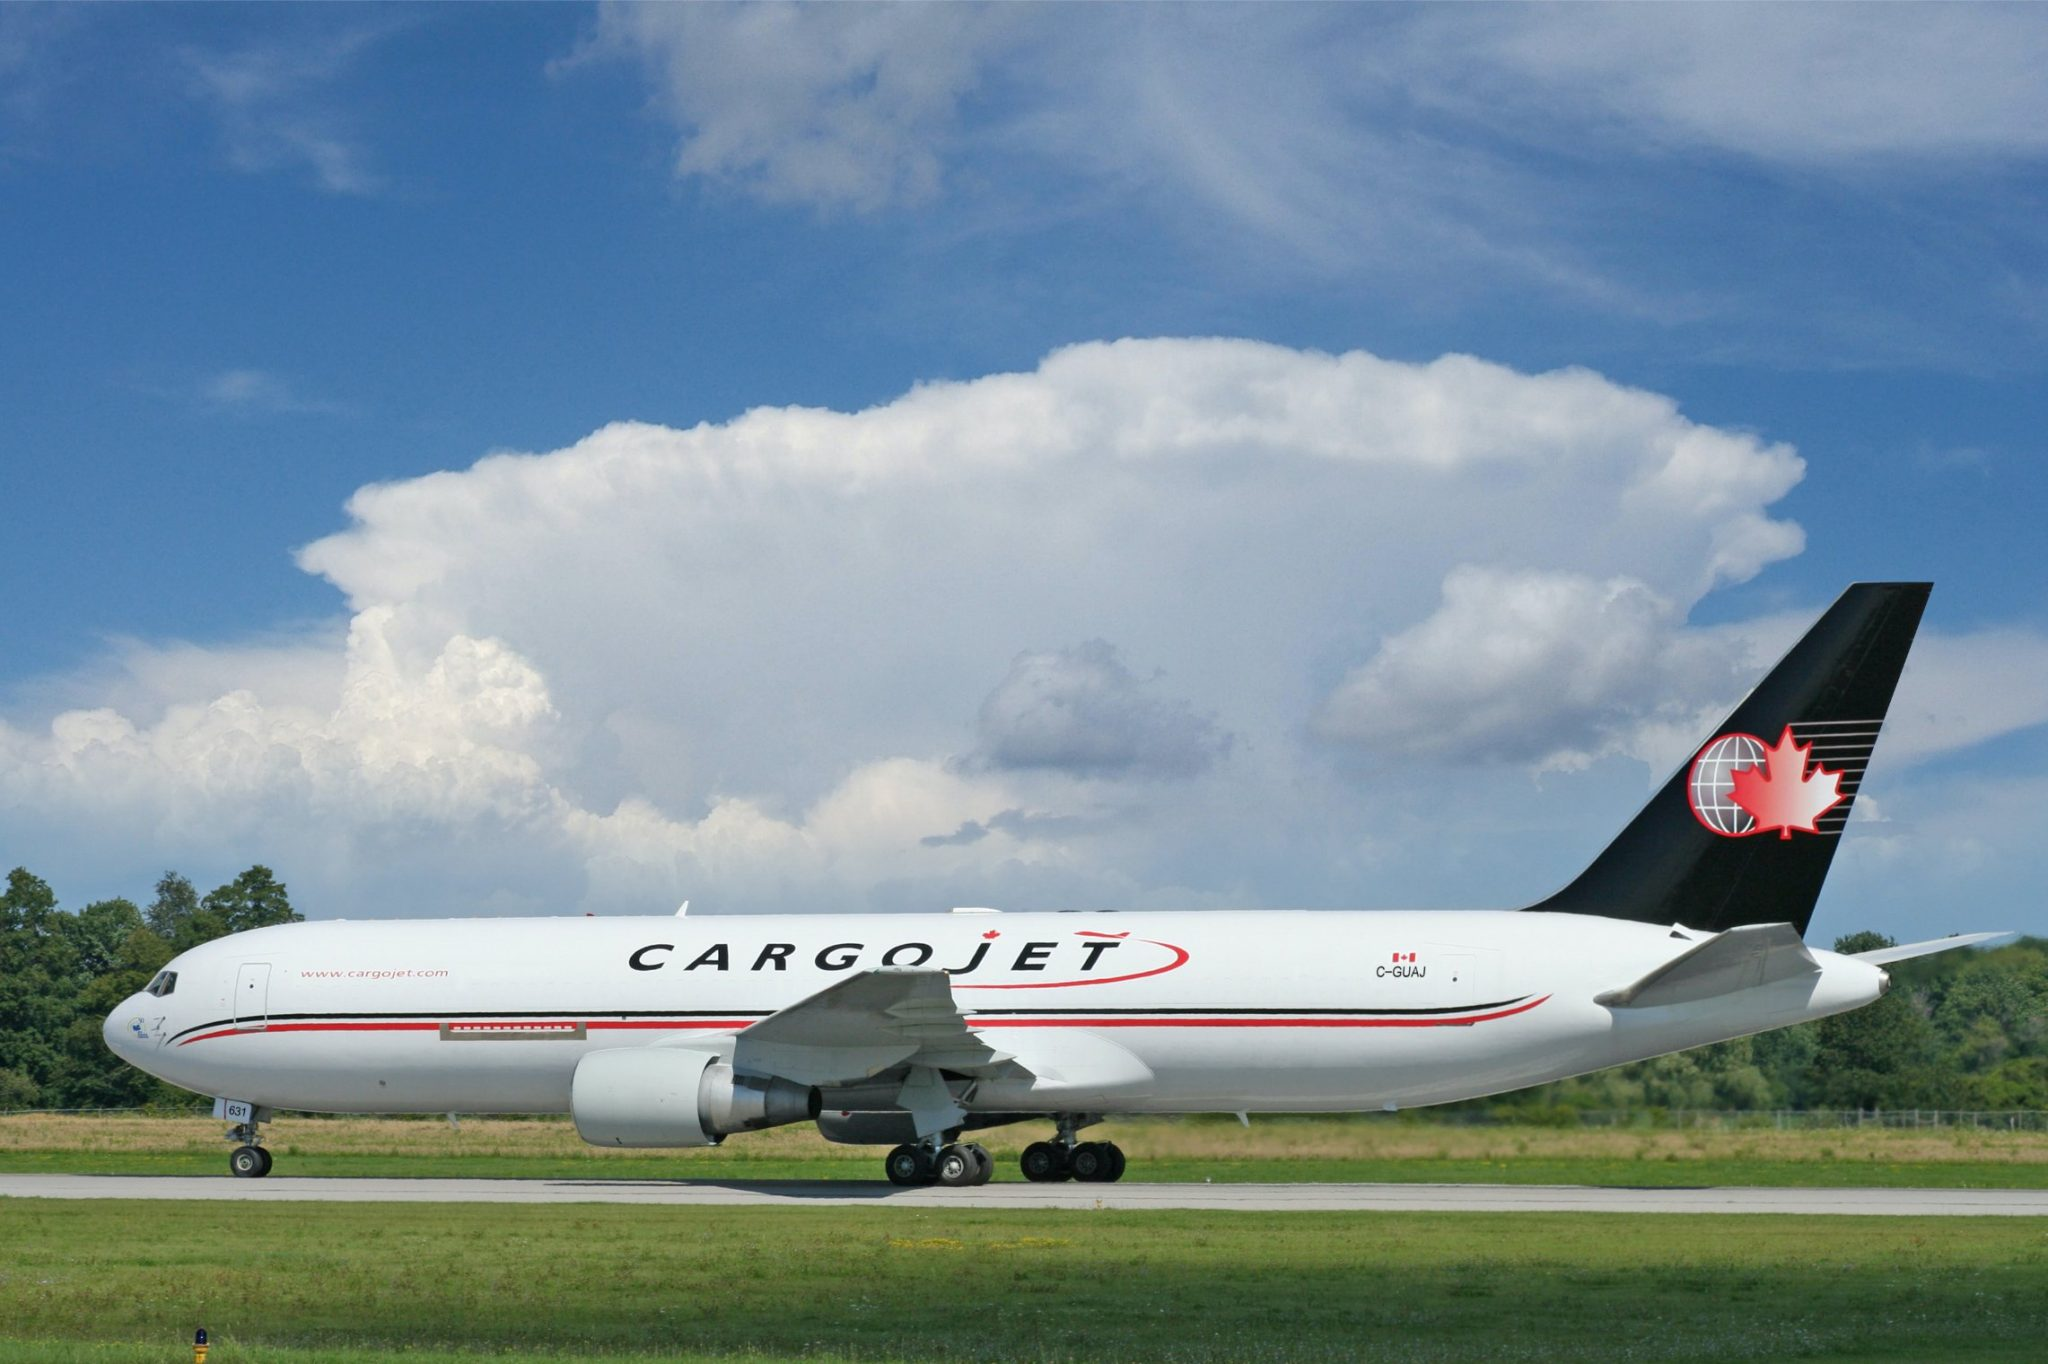 Cargojet profits in Q2 amid flat air cargo sector